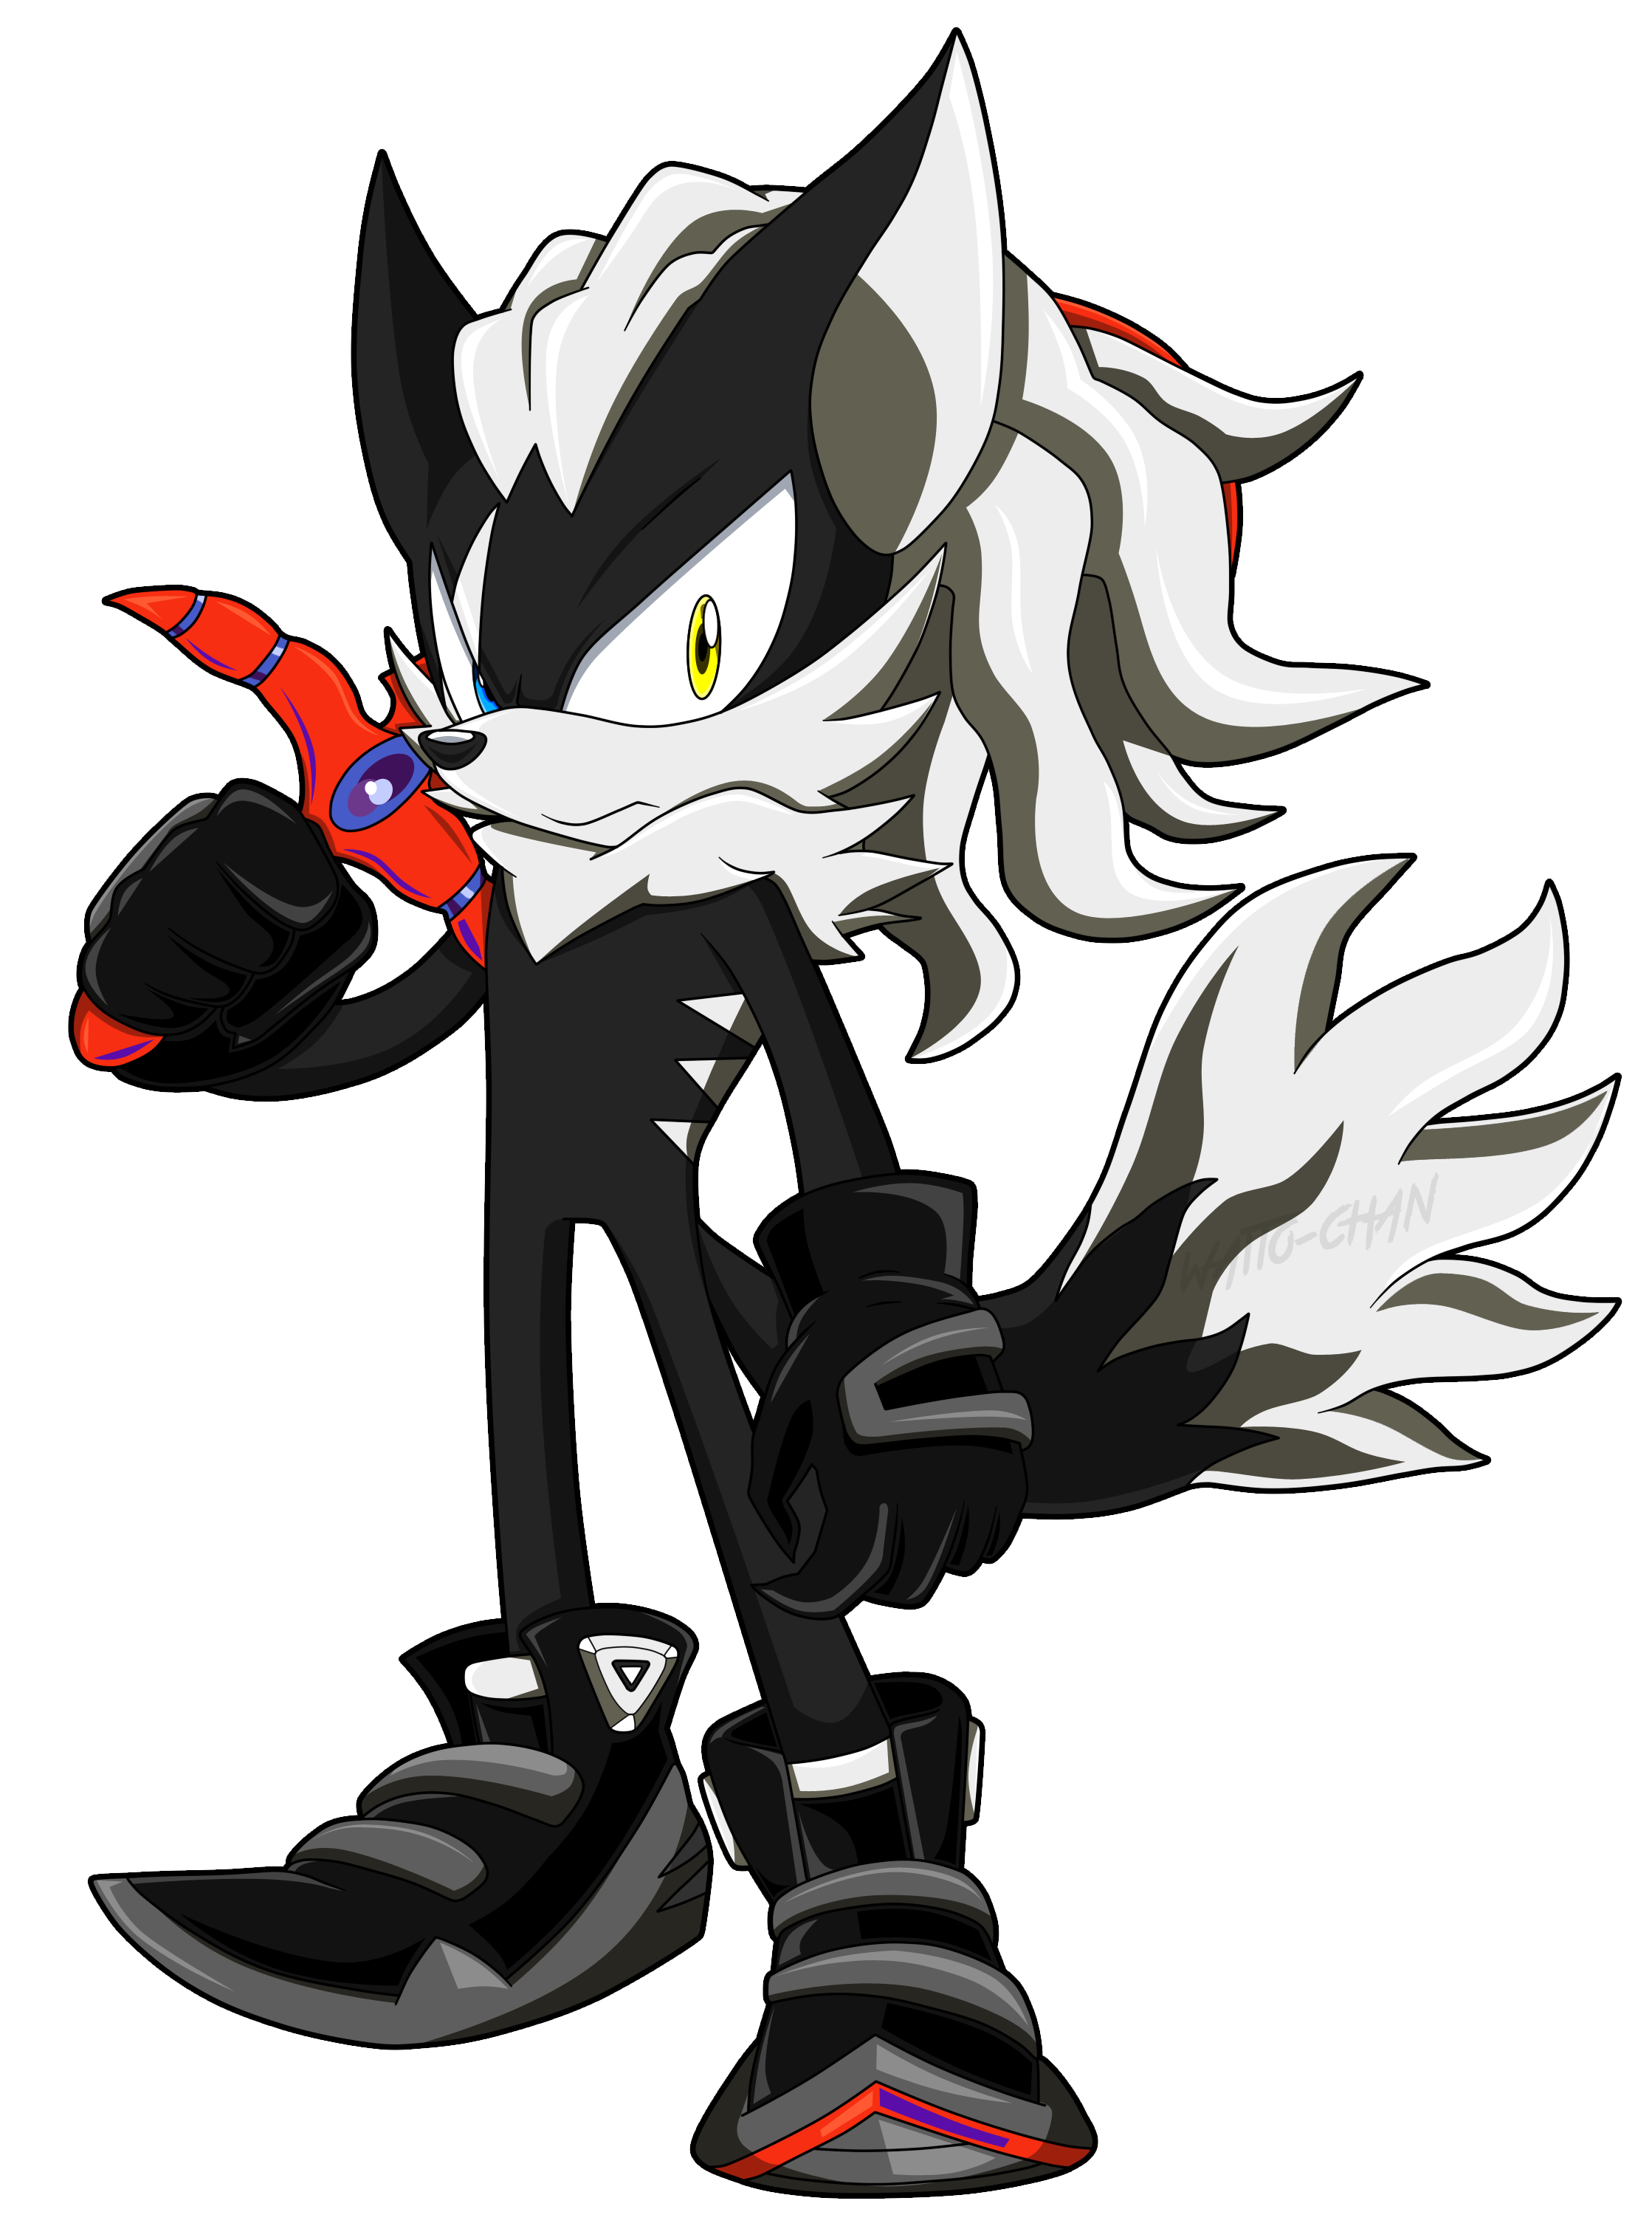 Infinite The Jackal By Waitochan On Deviantart Sonic Fan Characters Sonic The Hedgehog Sonic